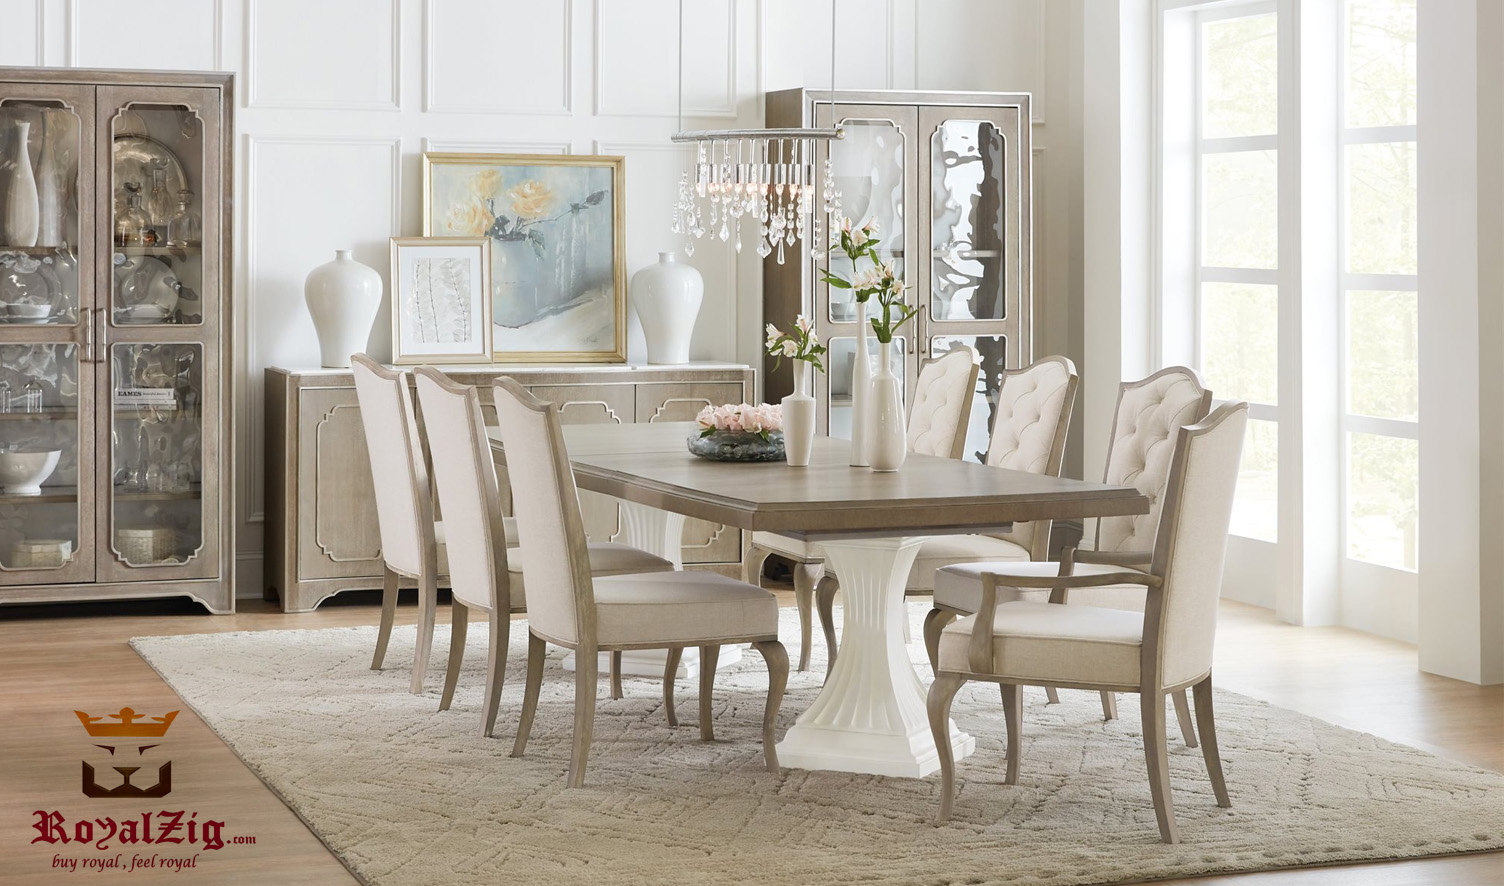 Chalfont Classic Style Modern Dining Table